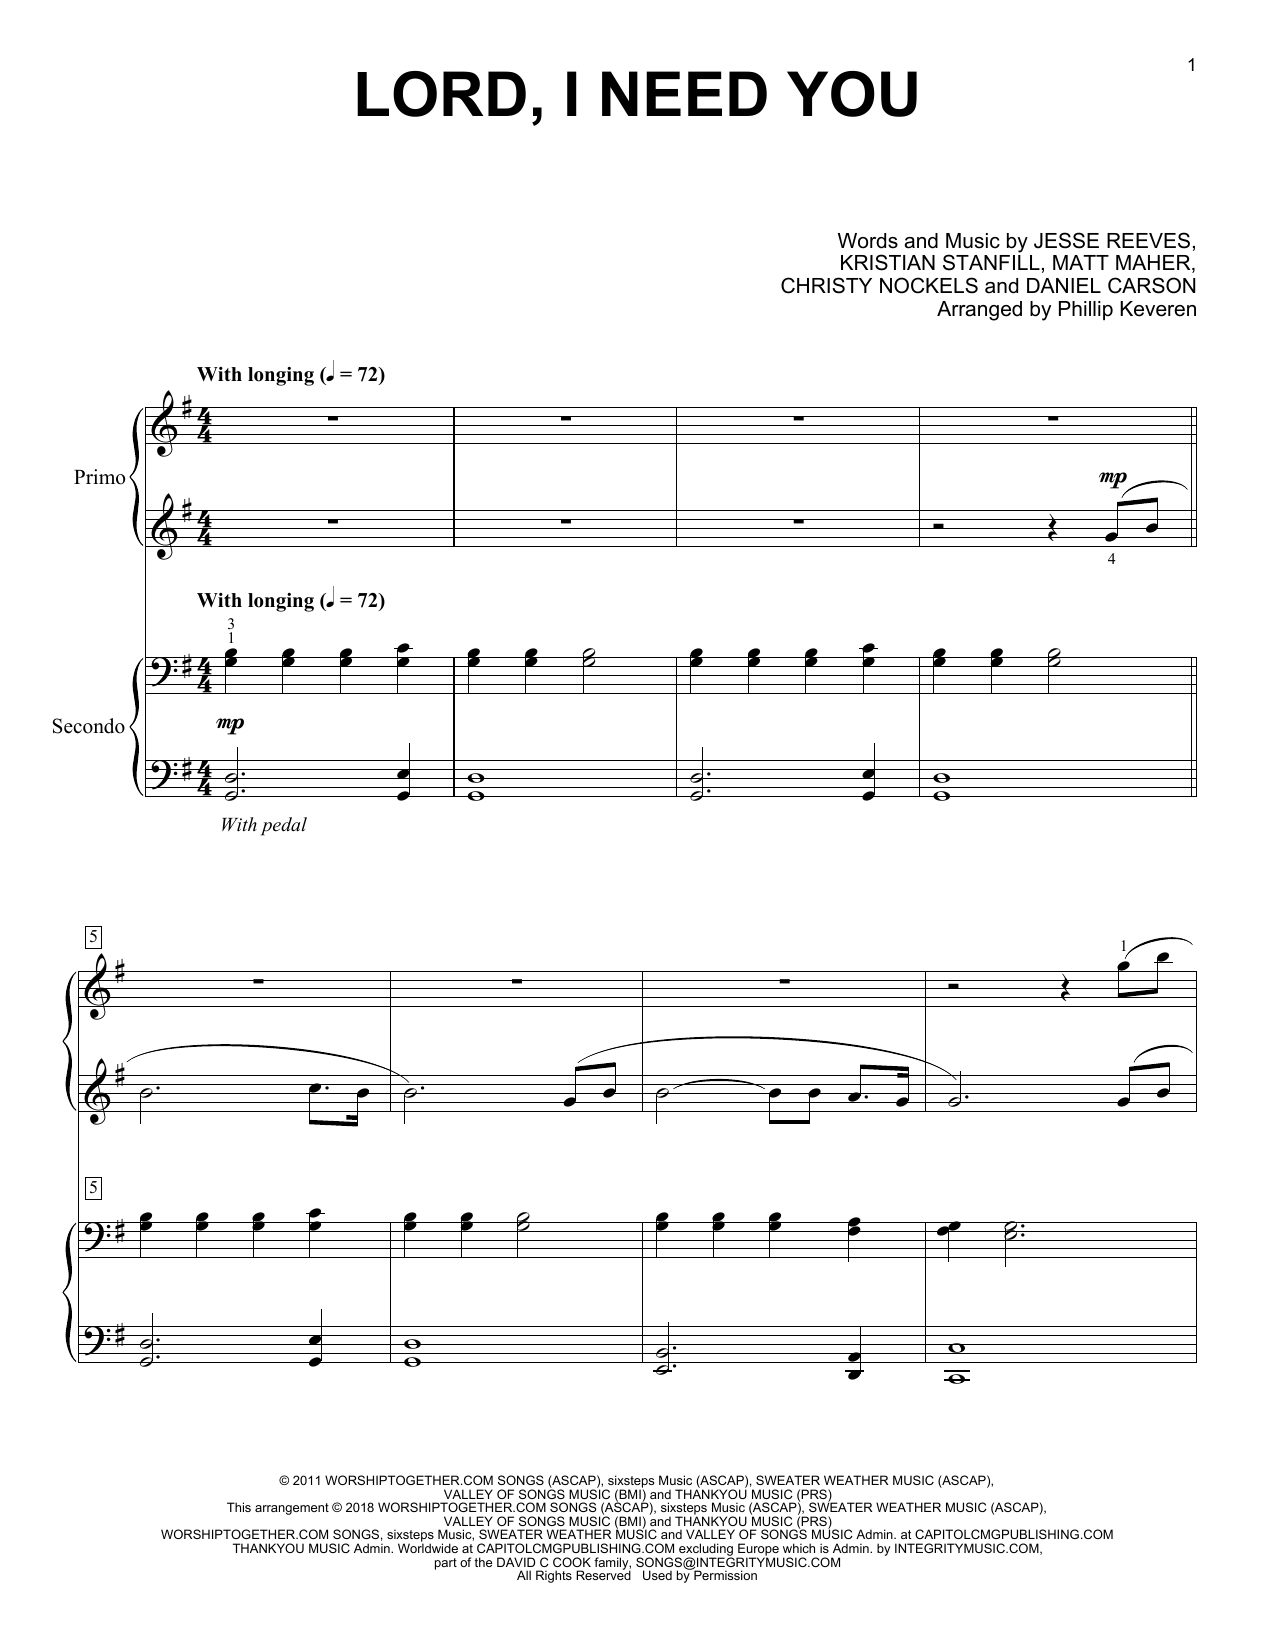 Lord I Need You Chords Phillip Keveren Lord I Need You Sheet Music Notes Chords Download Printable Piano Duet Sku 250312